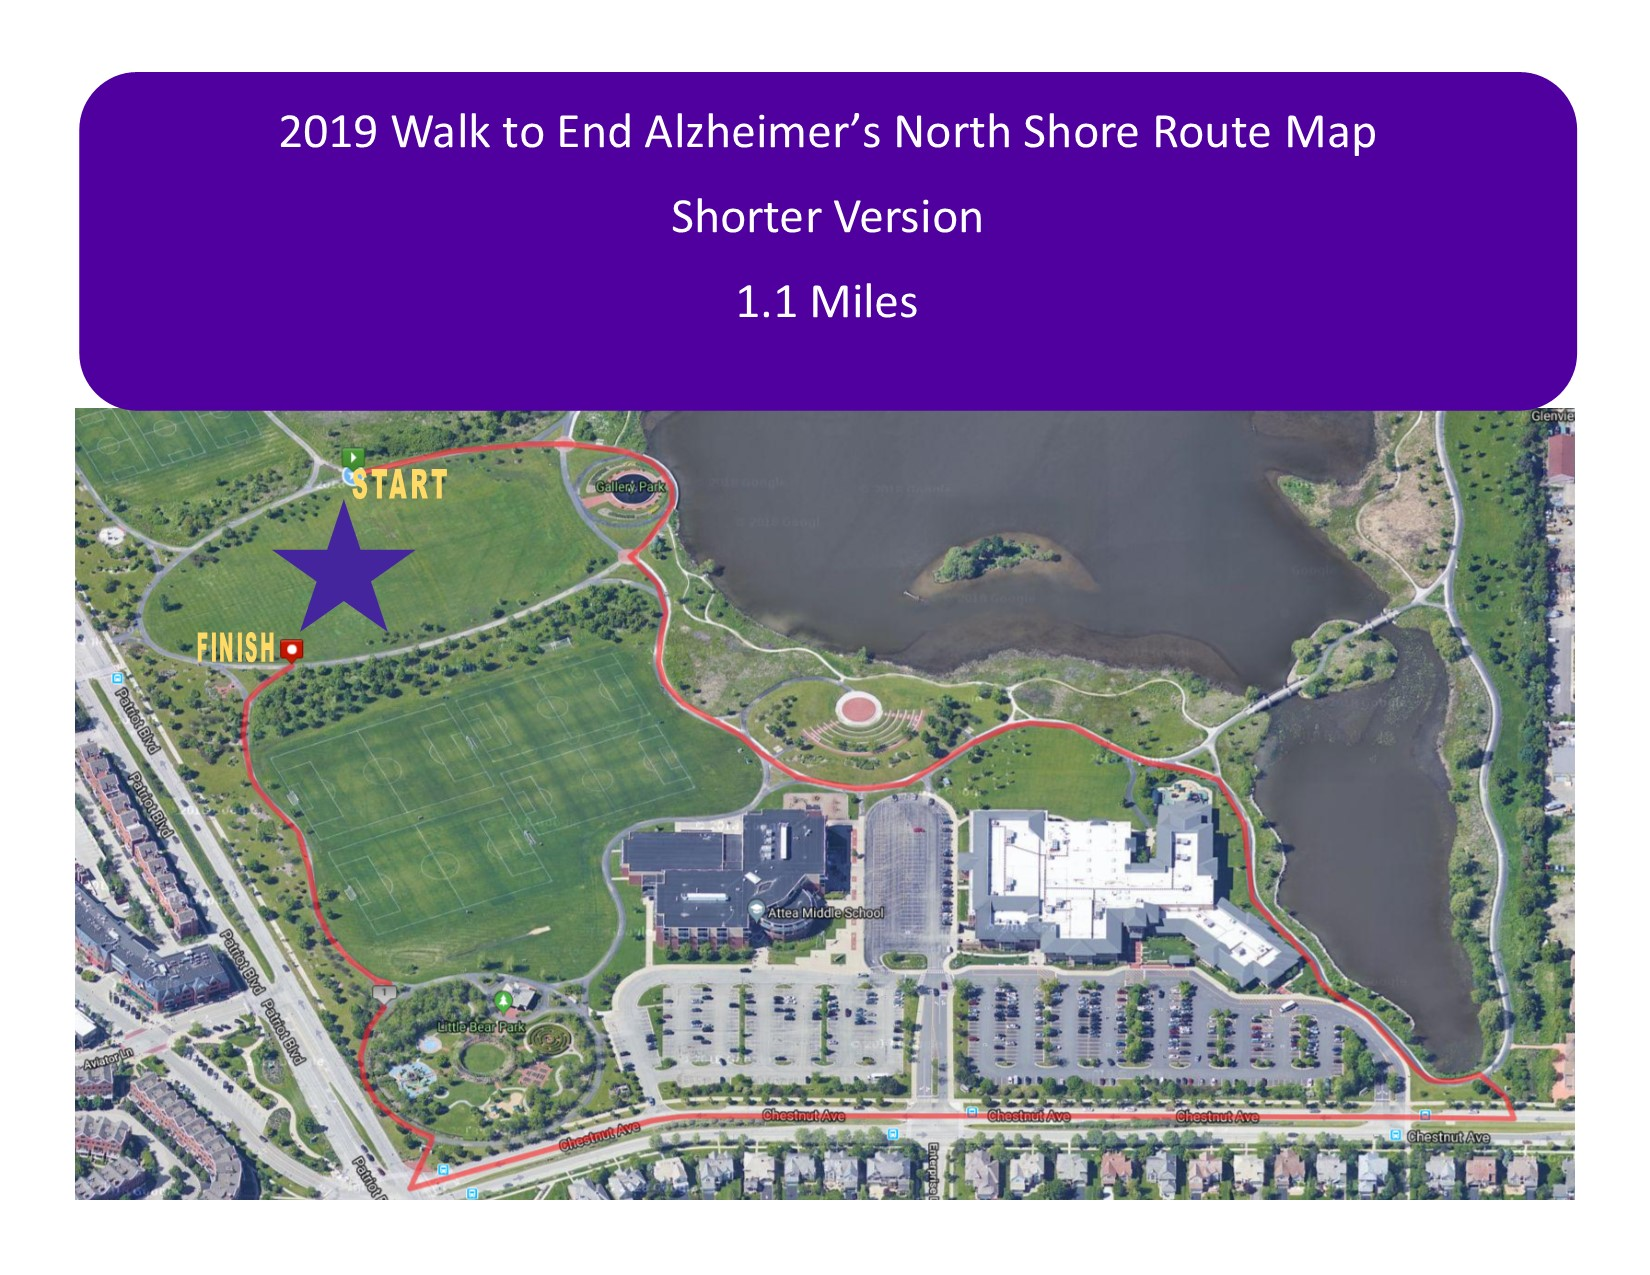 North Shore Short Route Map.jpg